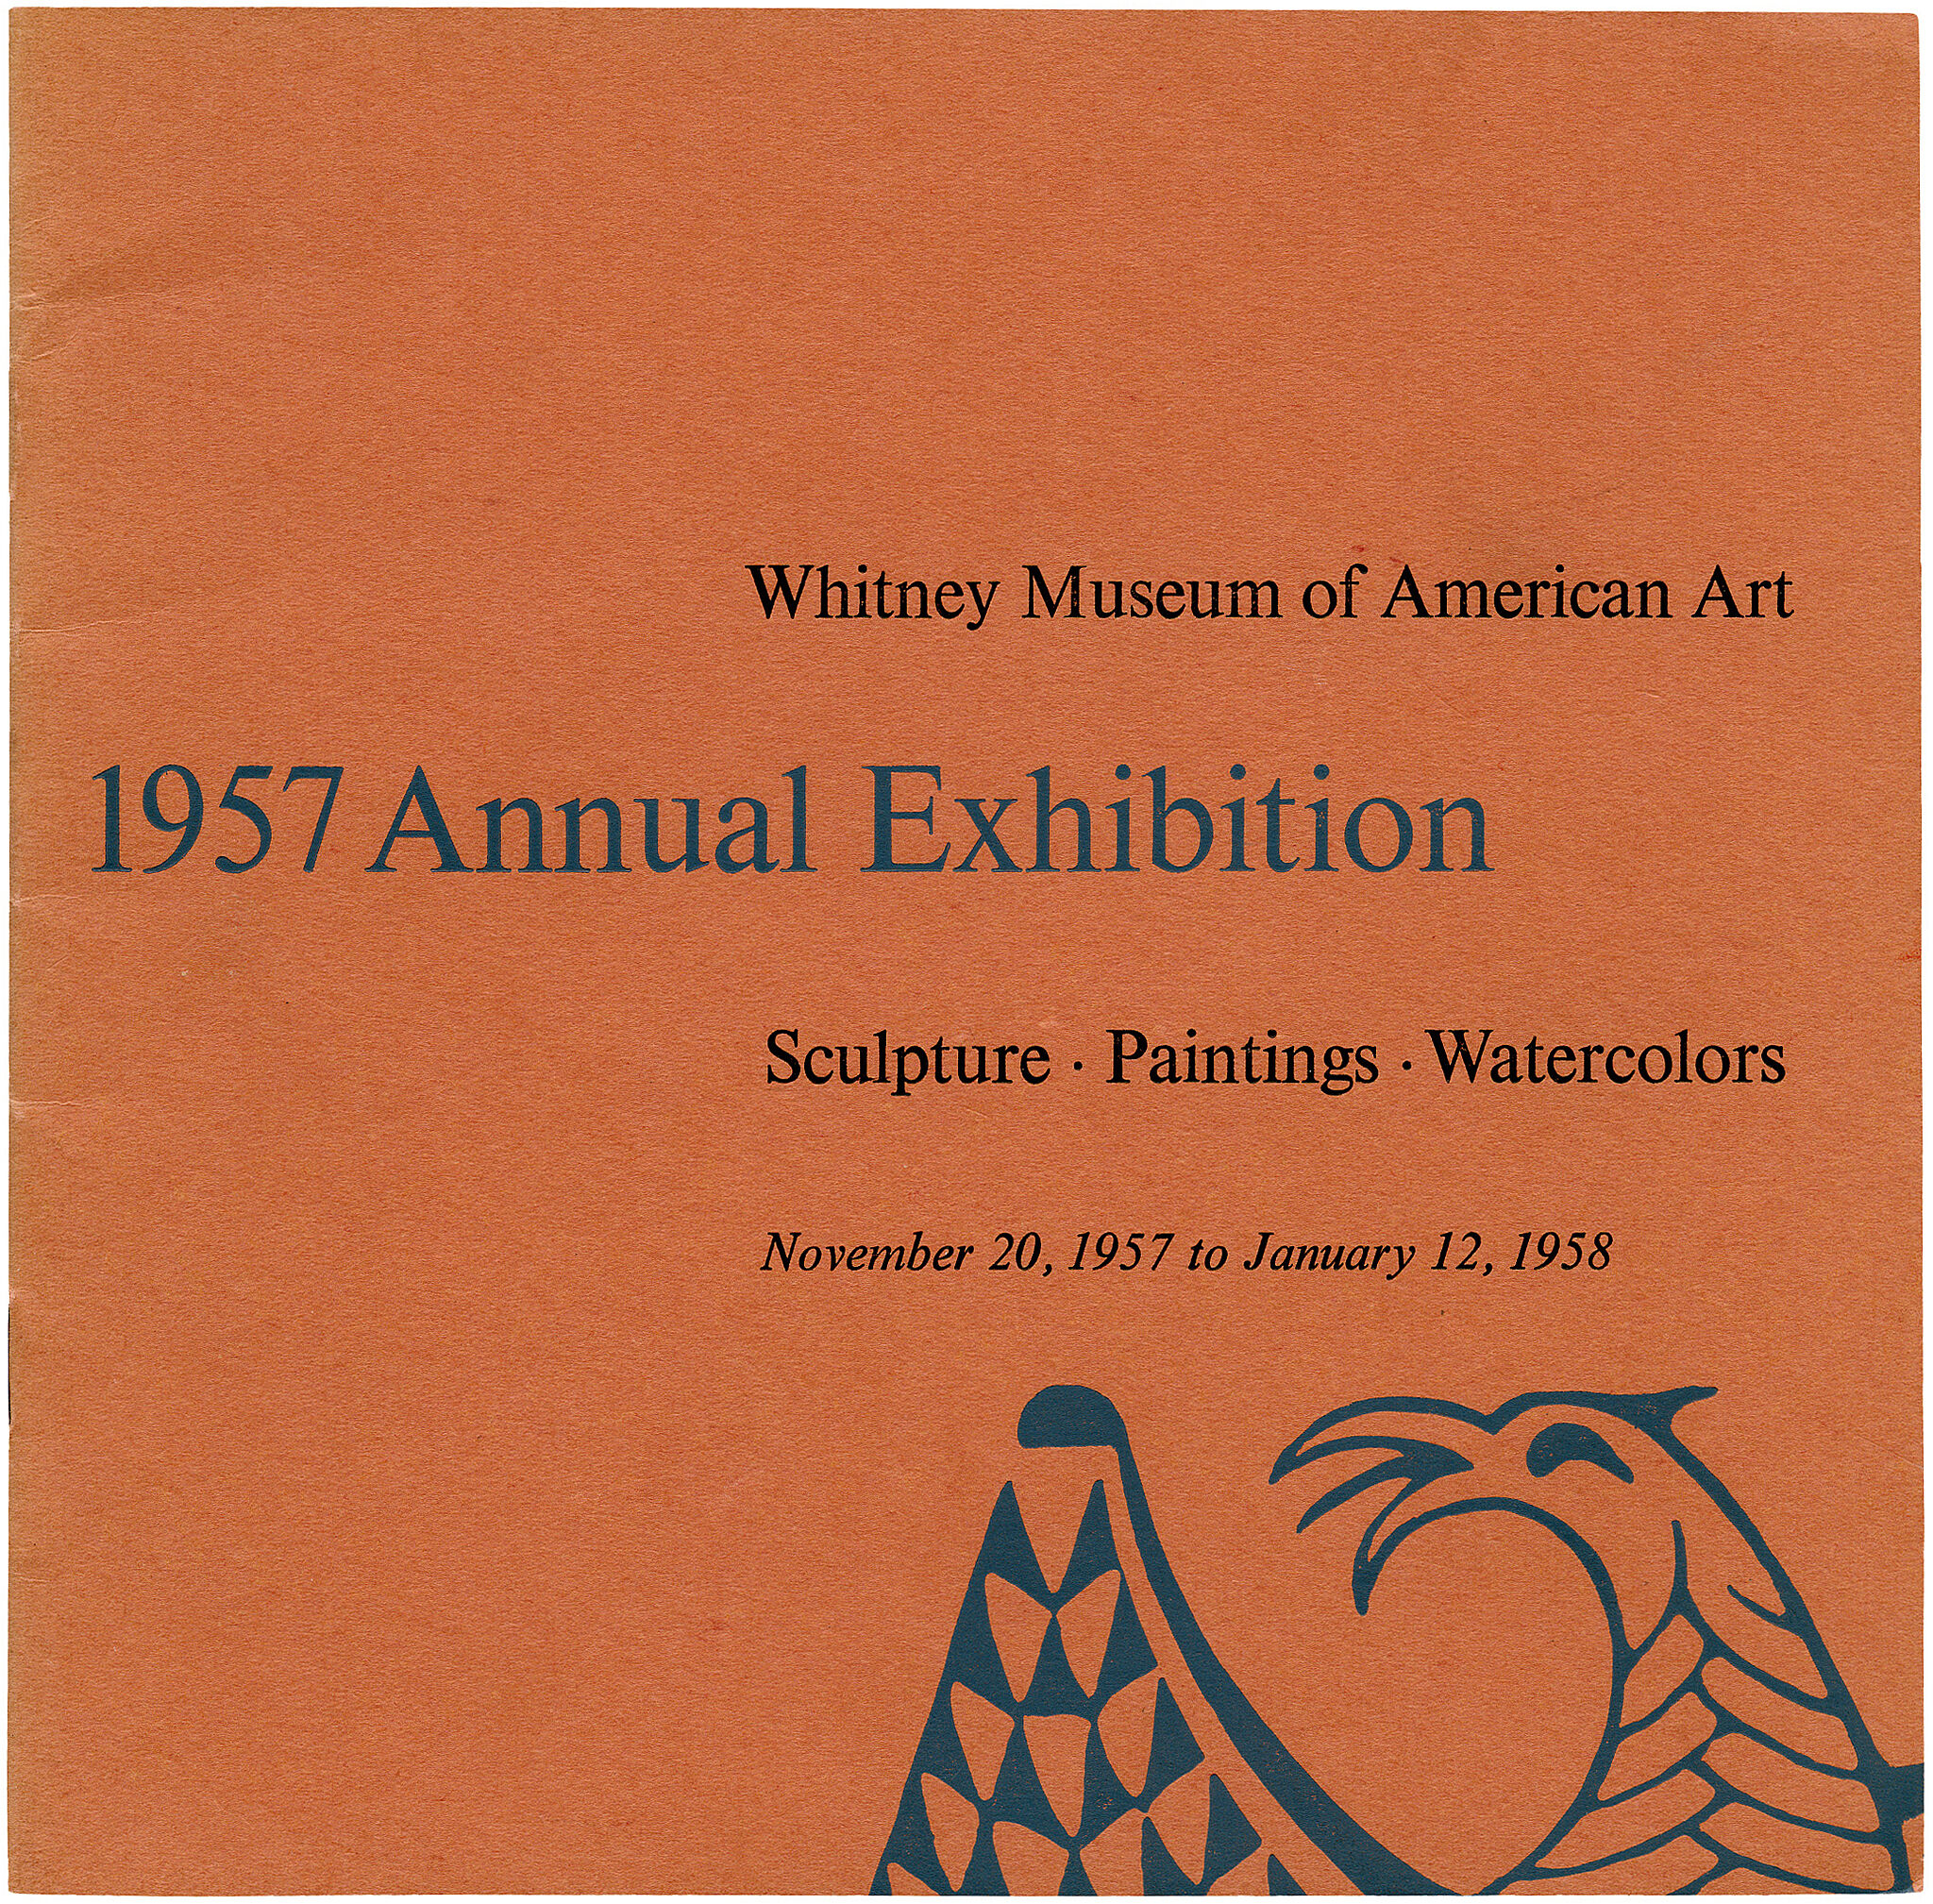 Catalogue cover for 1957 Annual Exhibition: Sculpture, Paintings, Watercolors